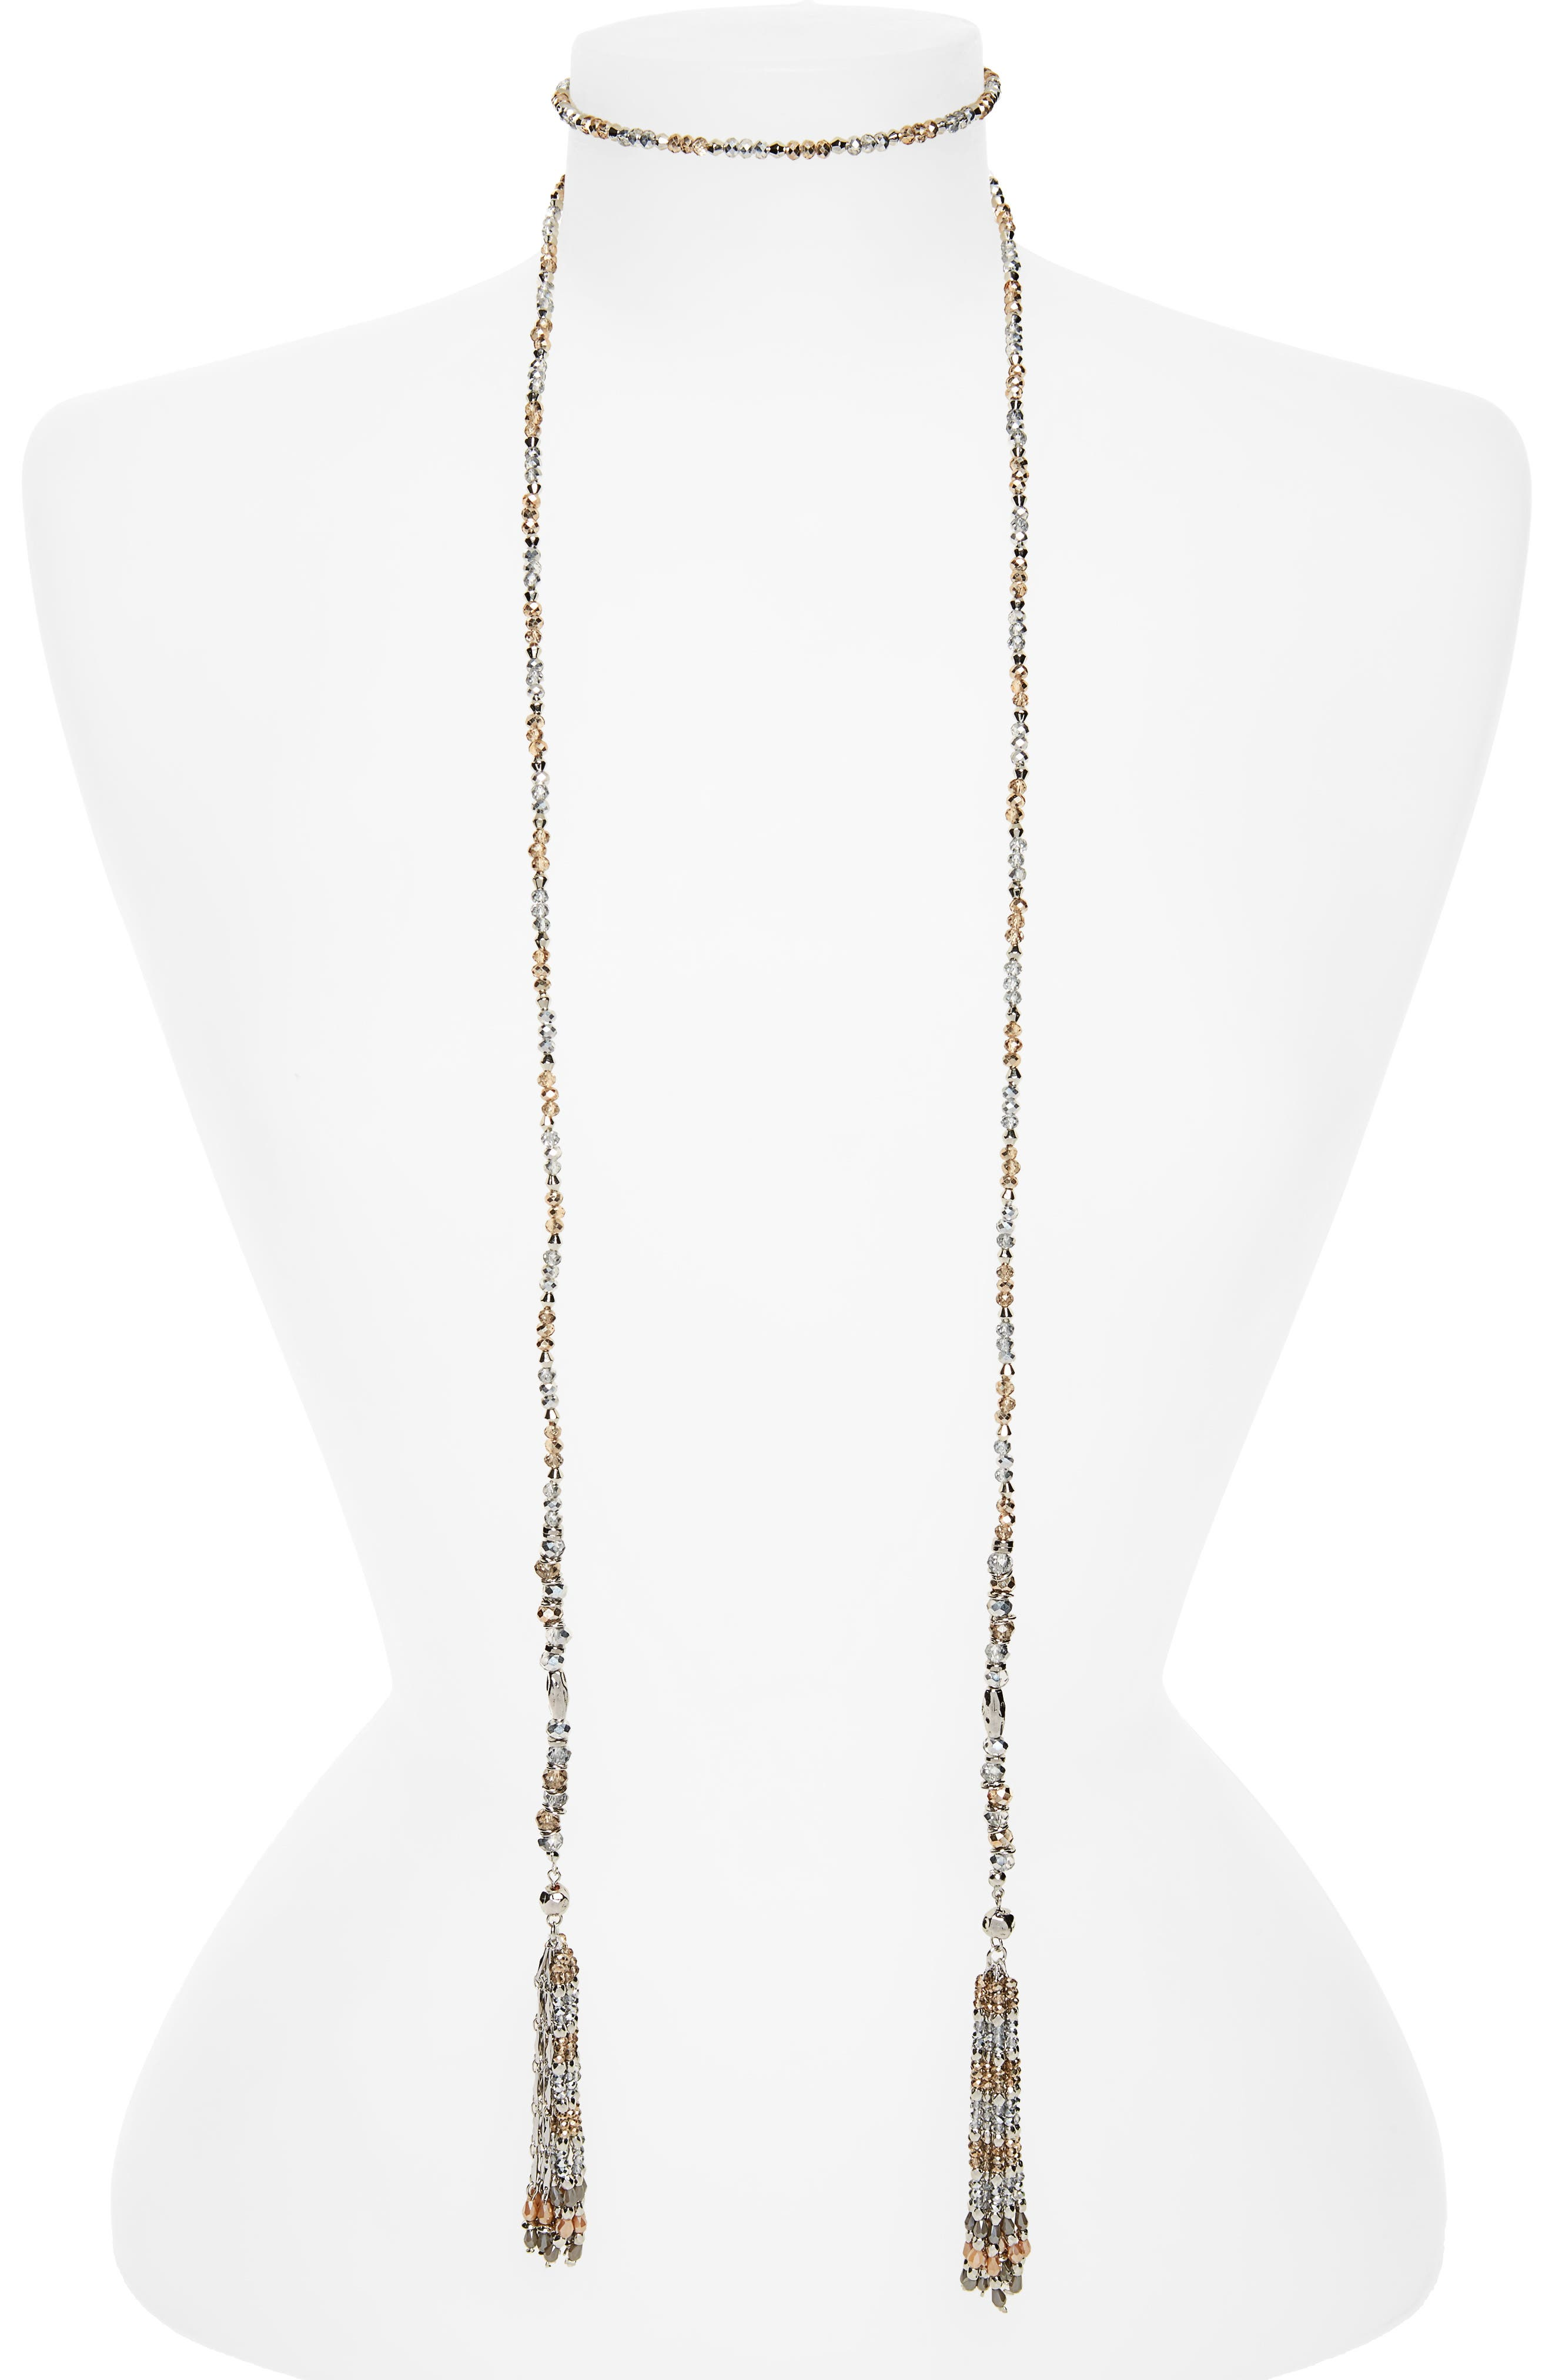 CRISTABELLE Beaded Tassel Lariat Necklace